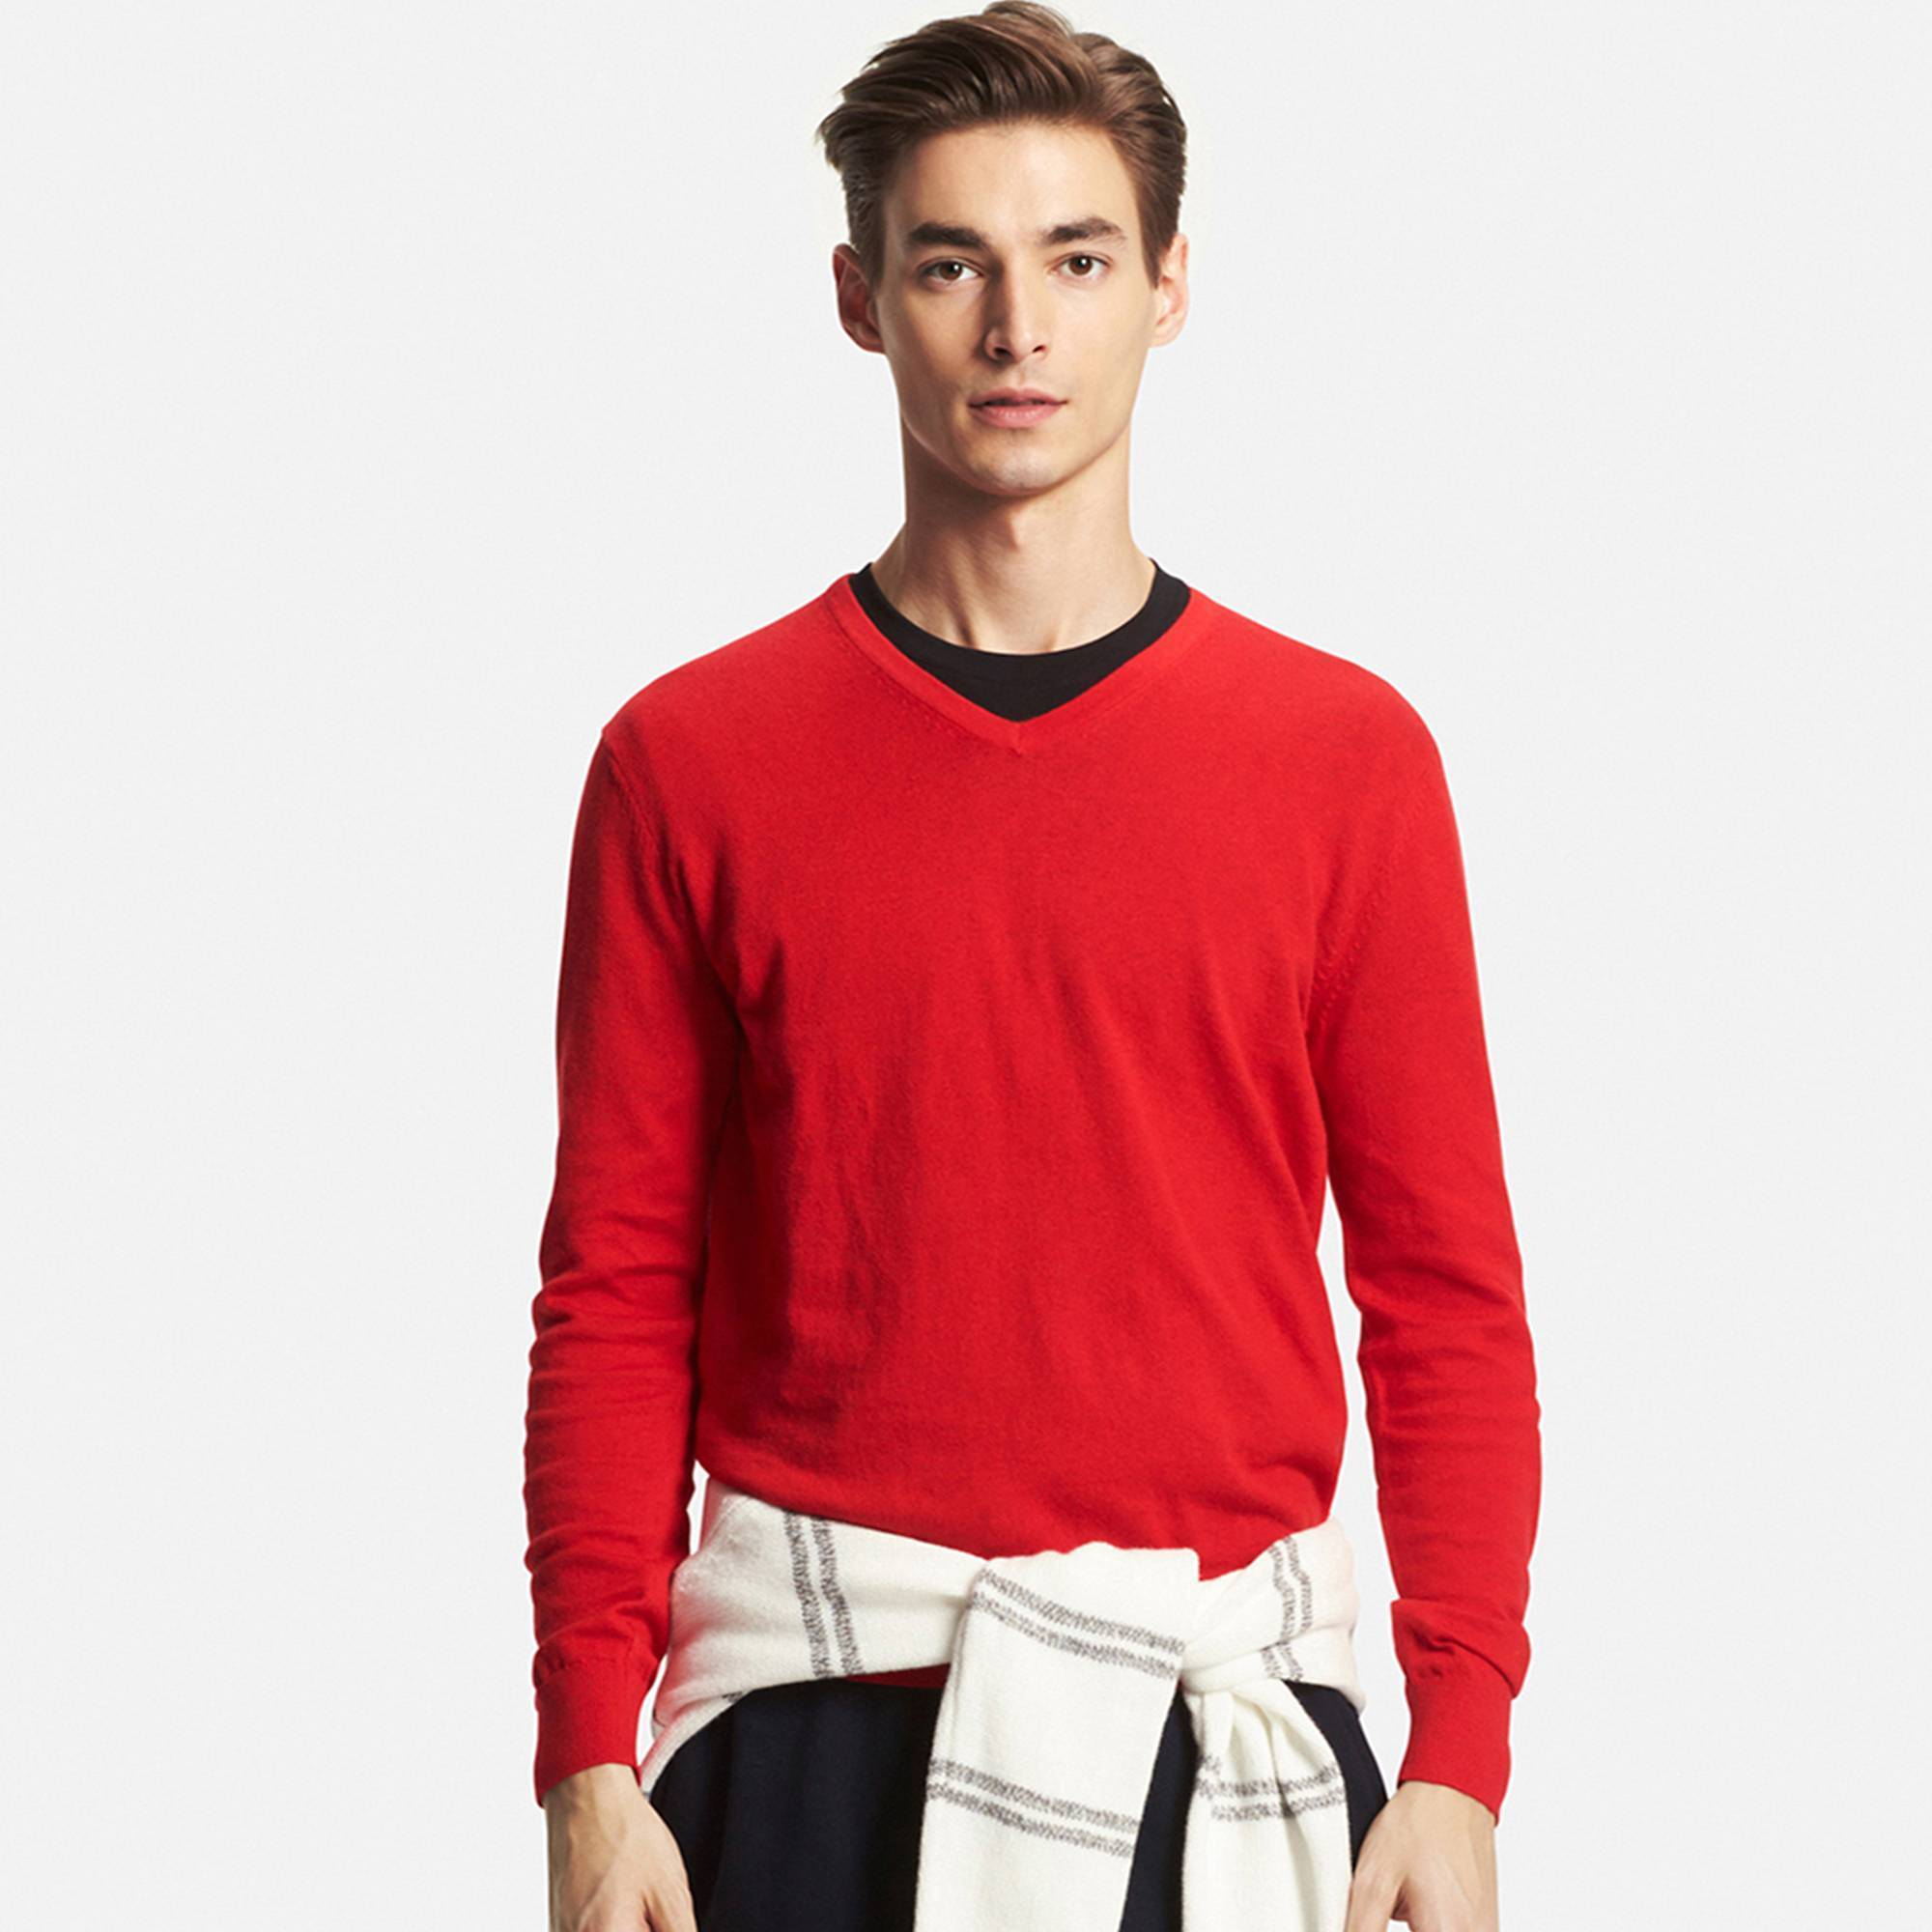 How to Wear a Red V-neck Sweater (32 looks) | Men's Fashion